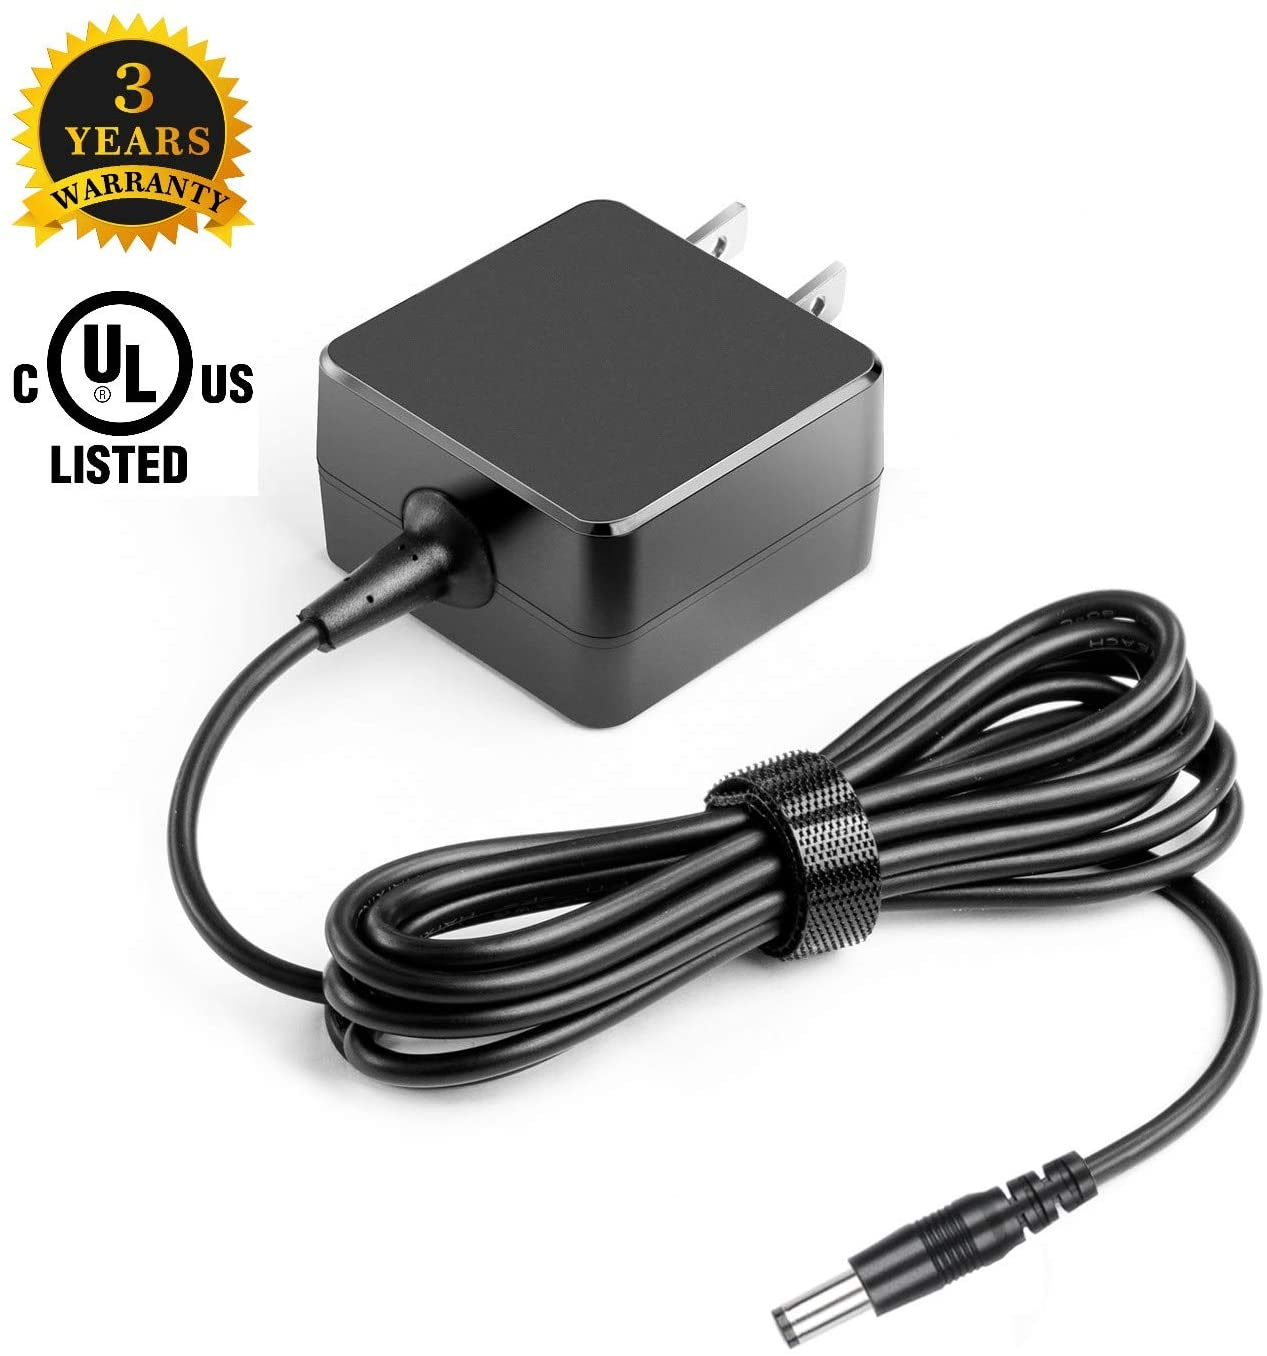 9V 2A AC to DC Adapter Charger Replacement for M-Audio Keystation Line Axiom Pro Series, Axiom Power Supply Charger